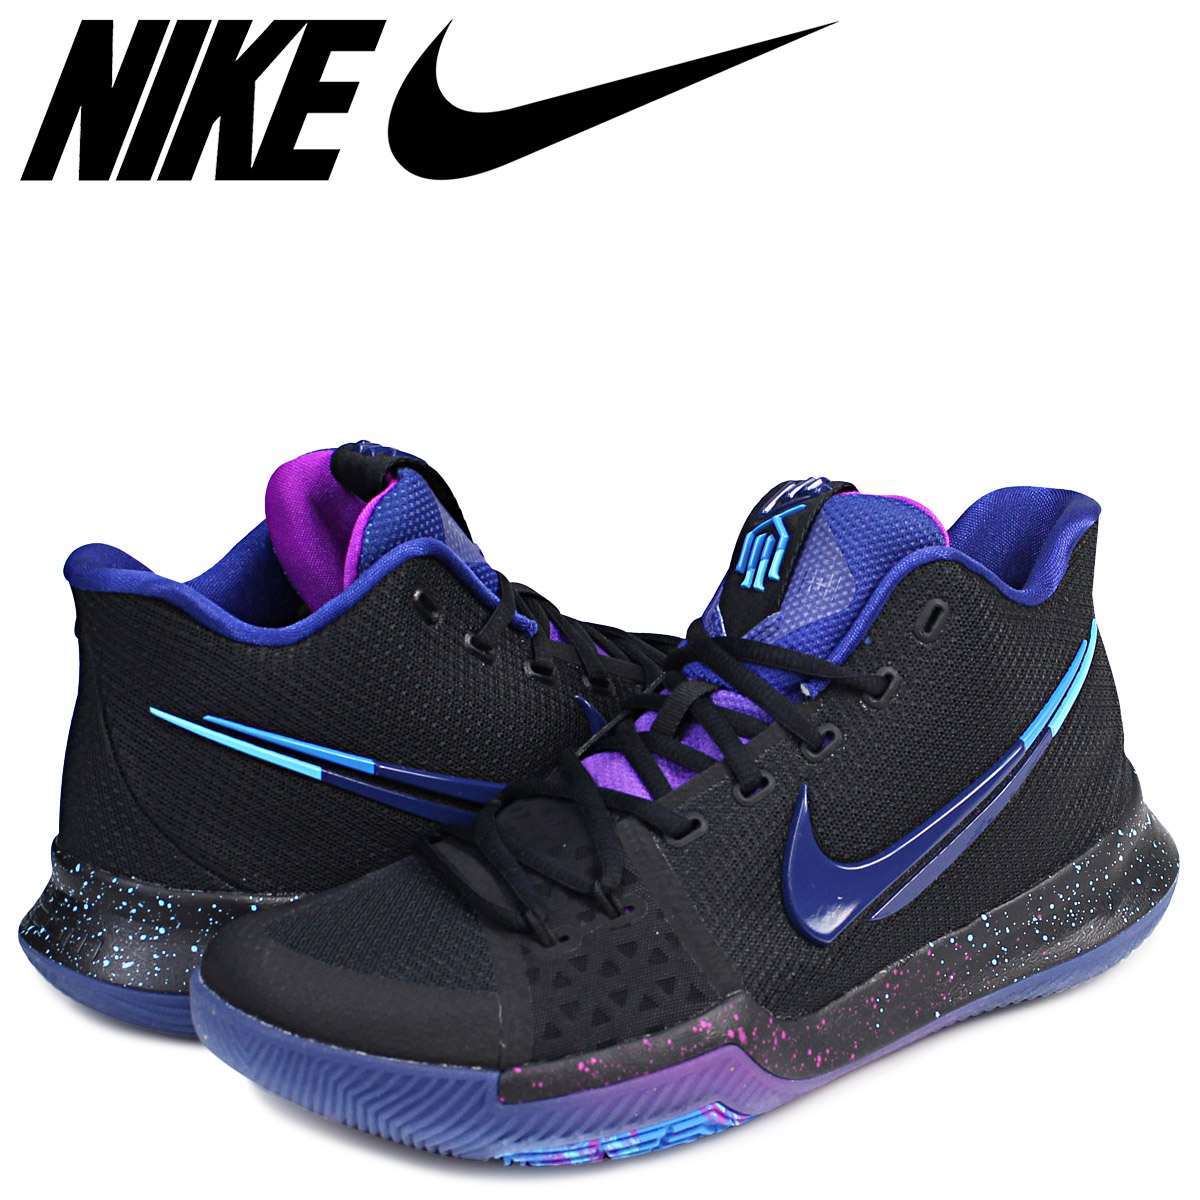 newest a1e0e bbd5c Nike NIKE chi Lee 3 sneakers KYRIE 3 FLIP THE SWITCH 852,395-003 chi Lee  Irving men shoes black